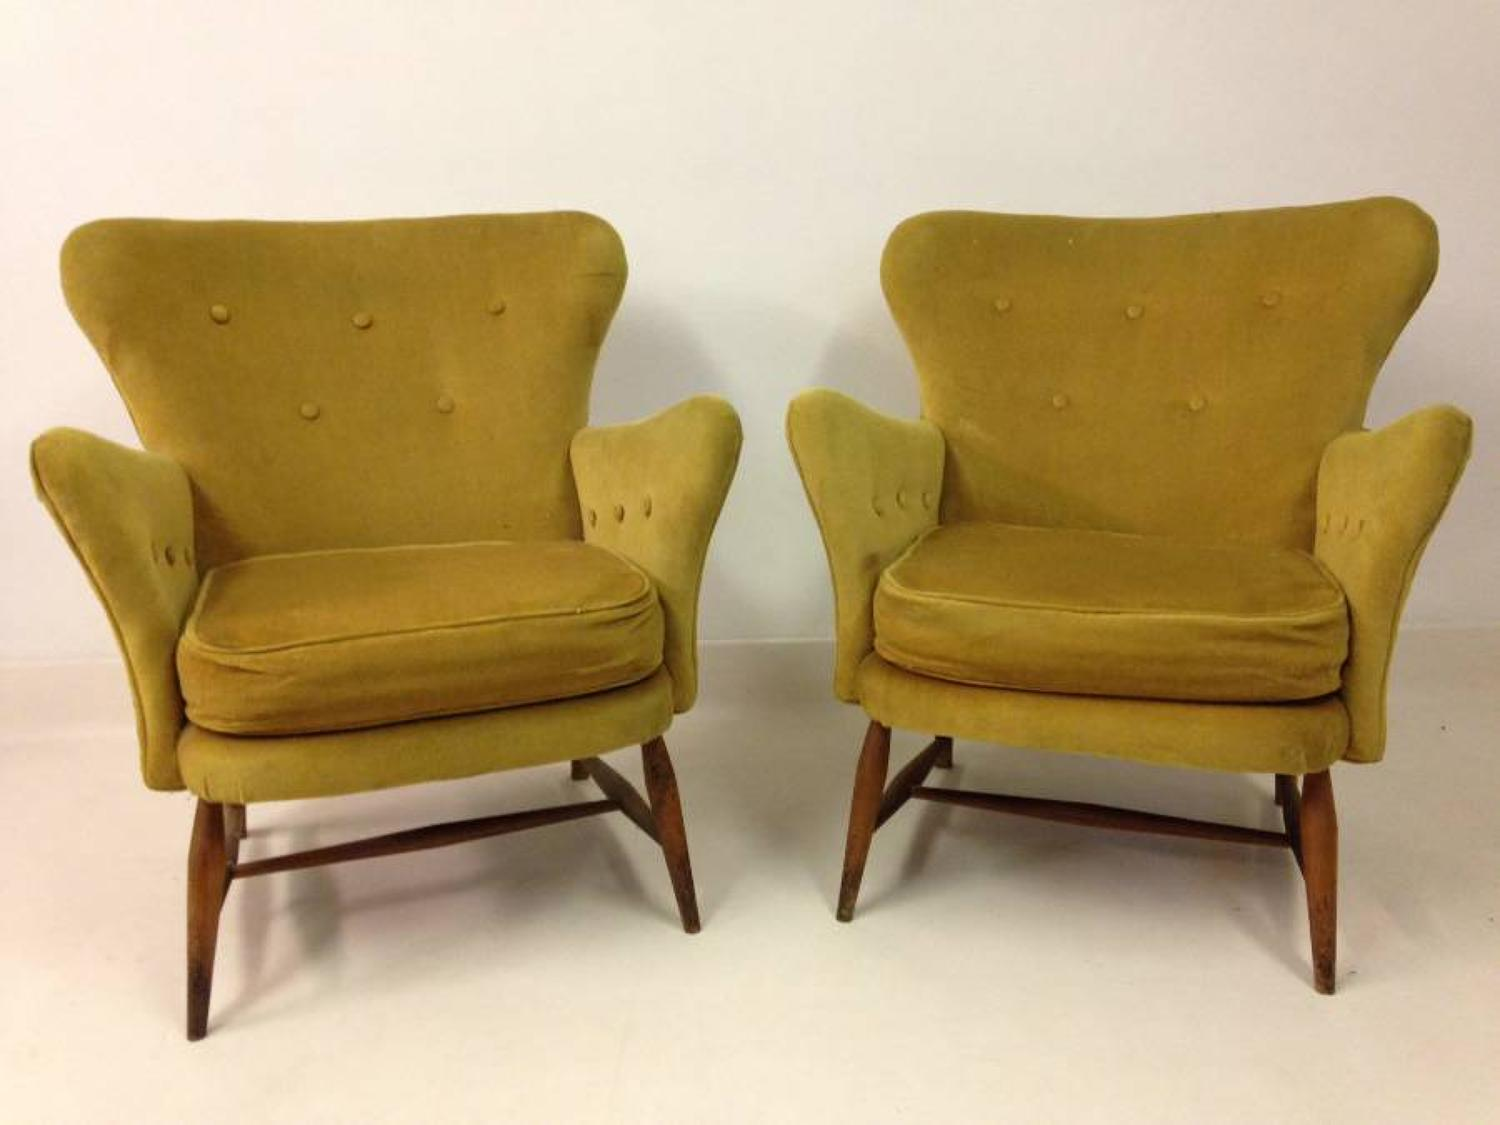 A pair of rare armchairs by Ercol